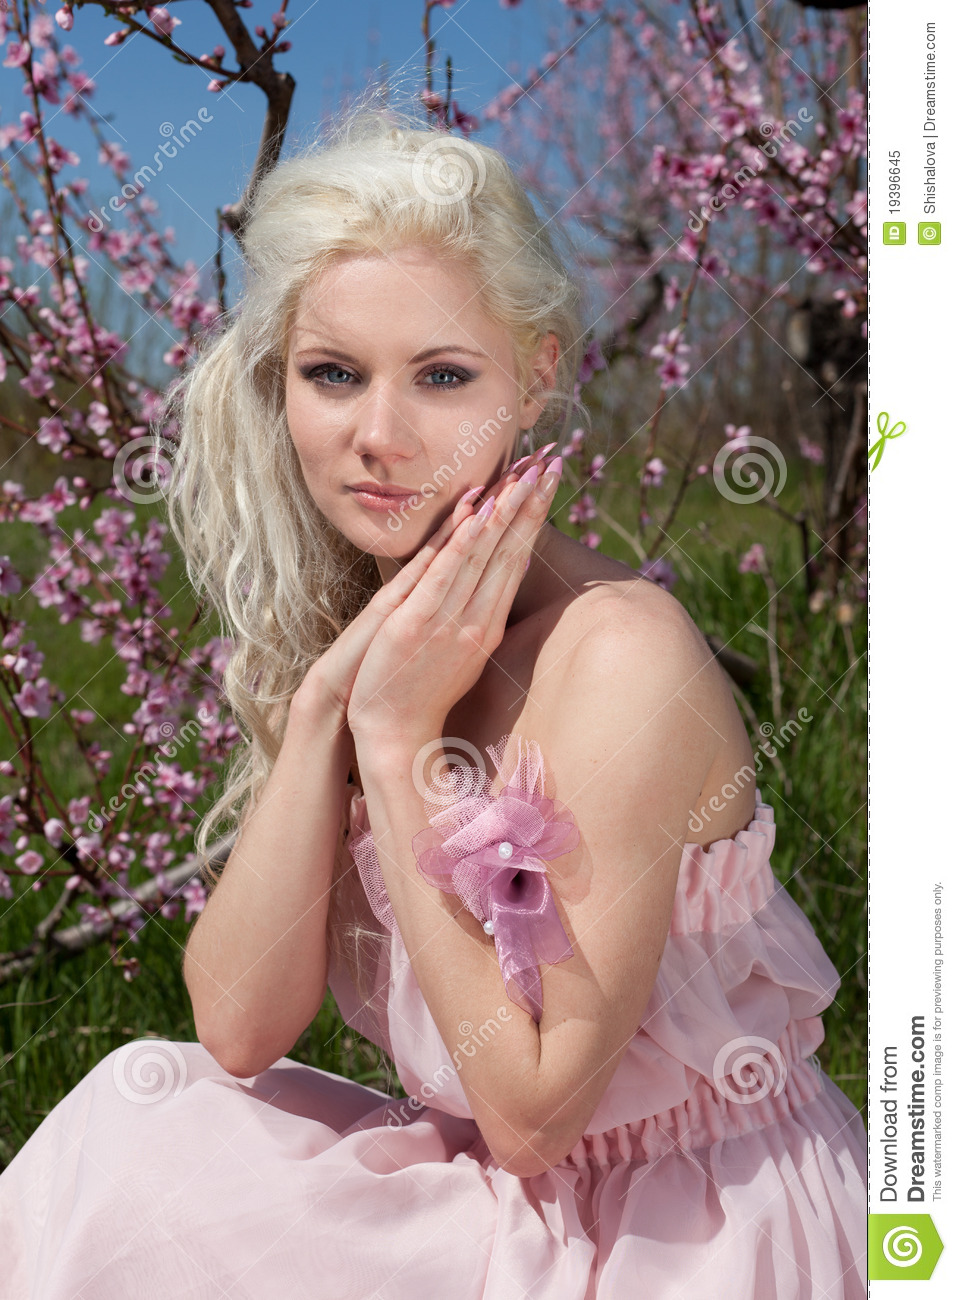 Young pretty blond woman in blooming garden